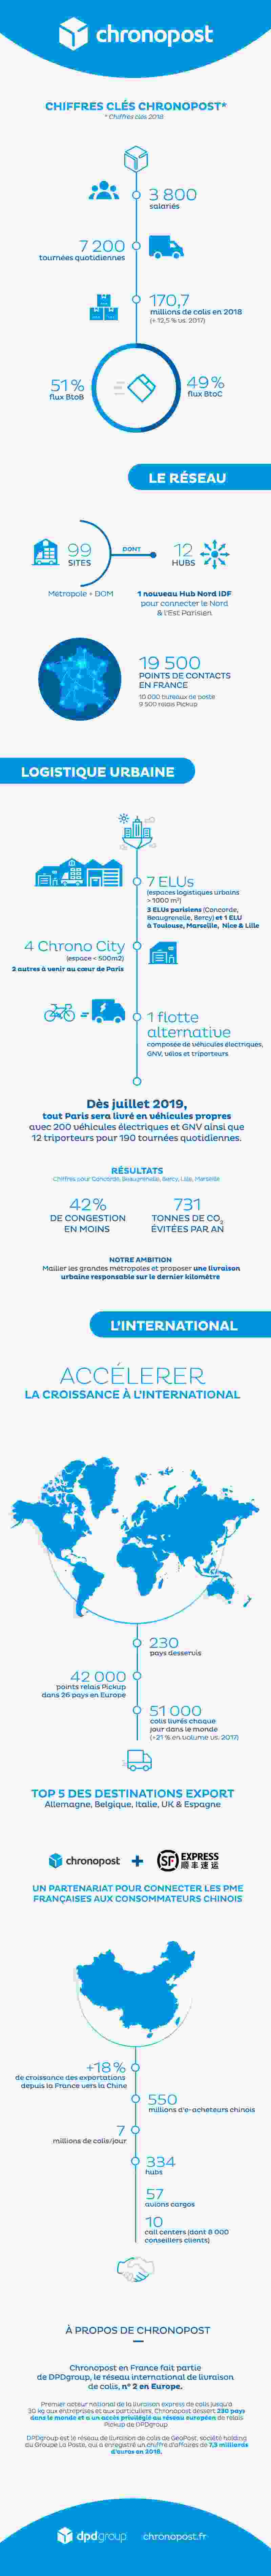 infographie-chiffres-cles-chronopost-2019.jpg